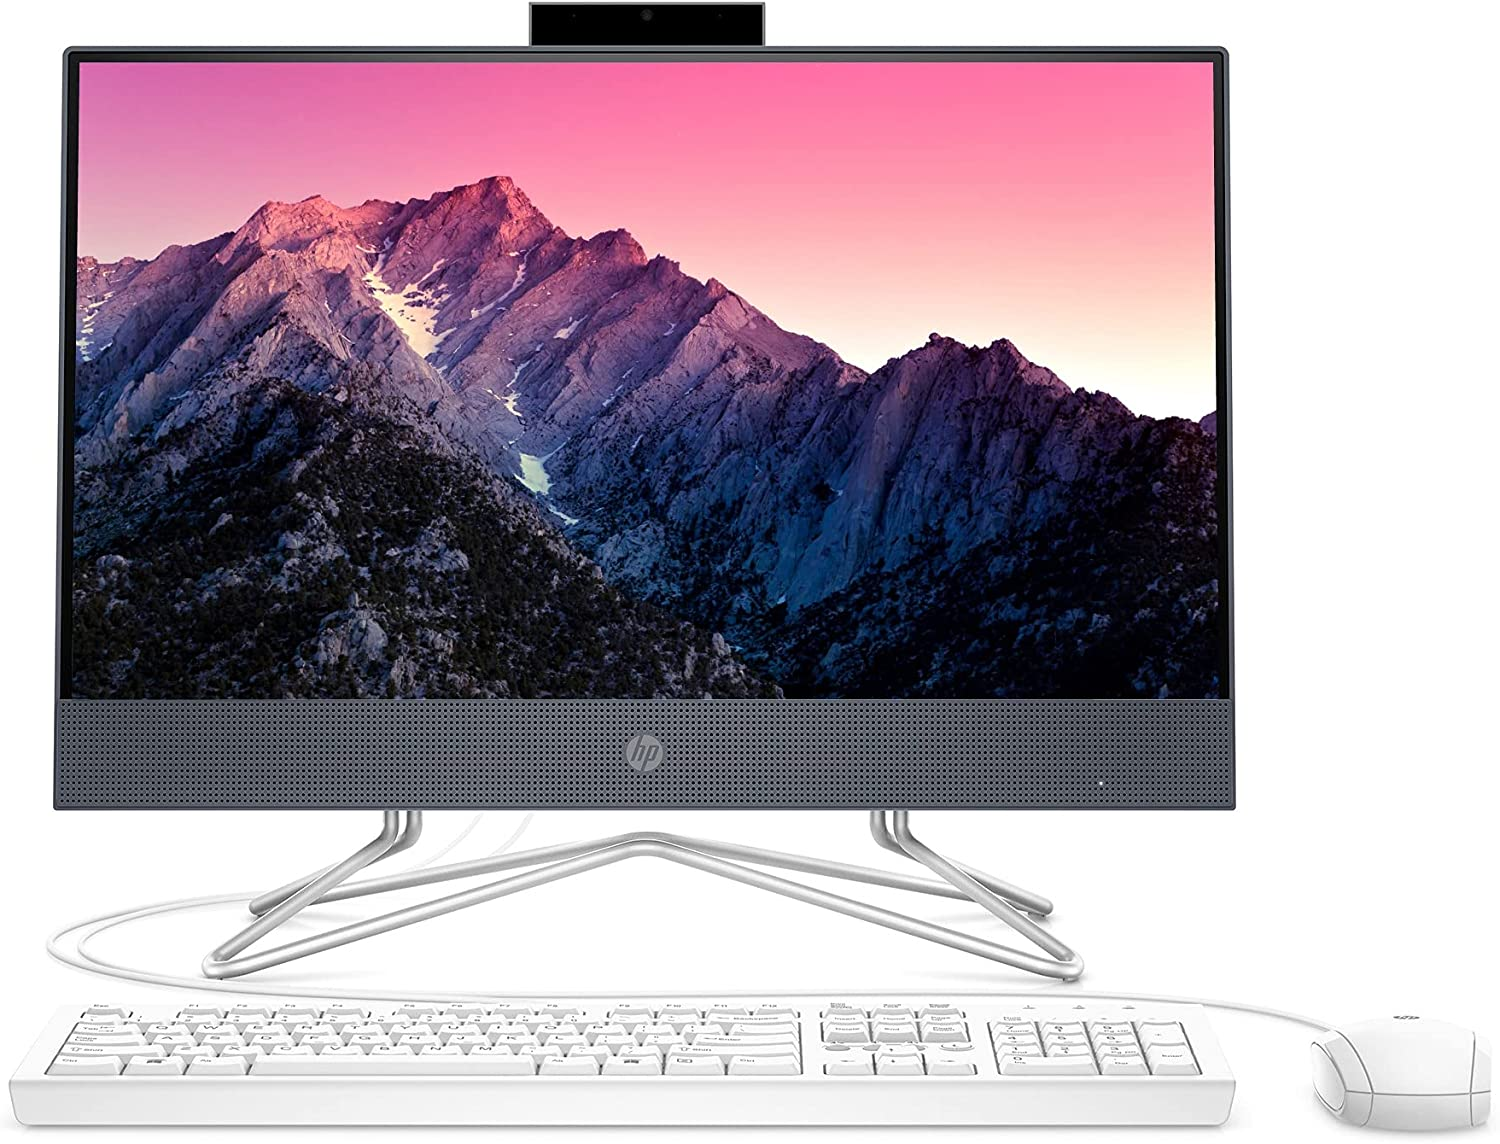 2021 Newest HP 22 All-in-One Max 74% OFF Desktop FHD Max 78% OFF Dis 21.5